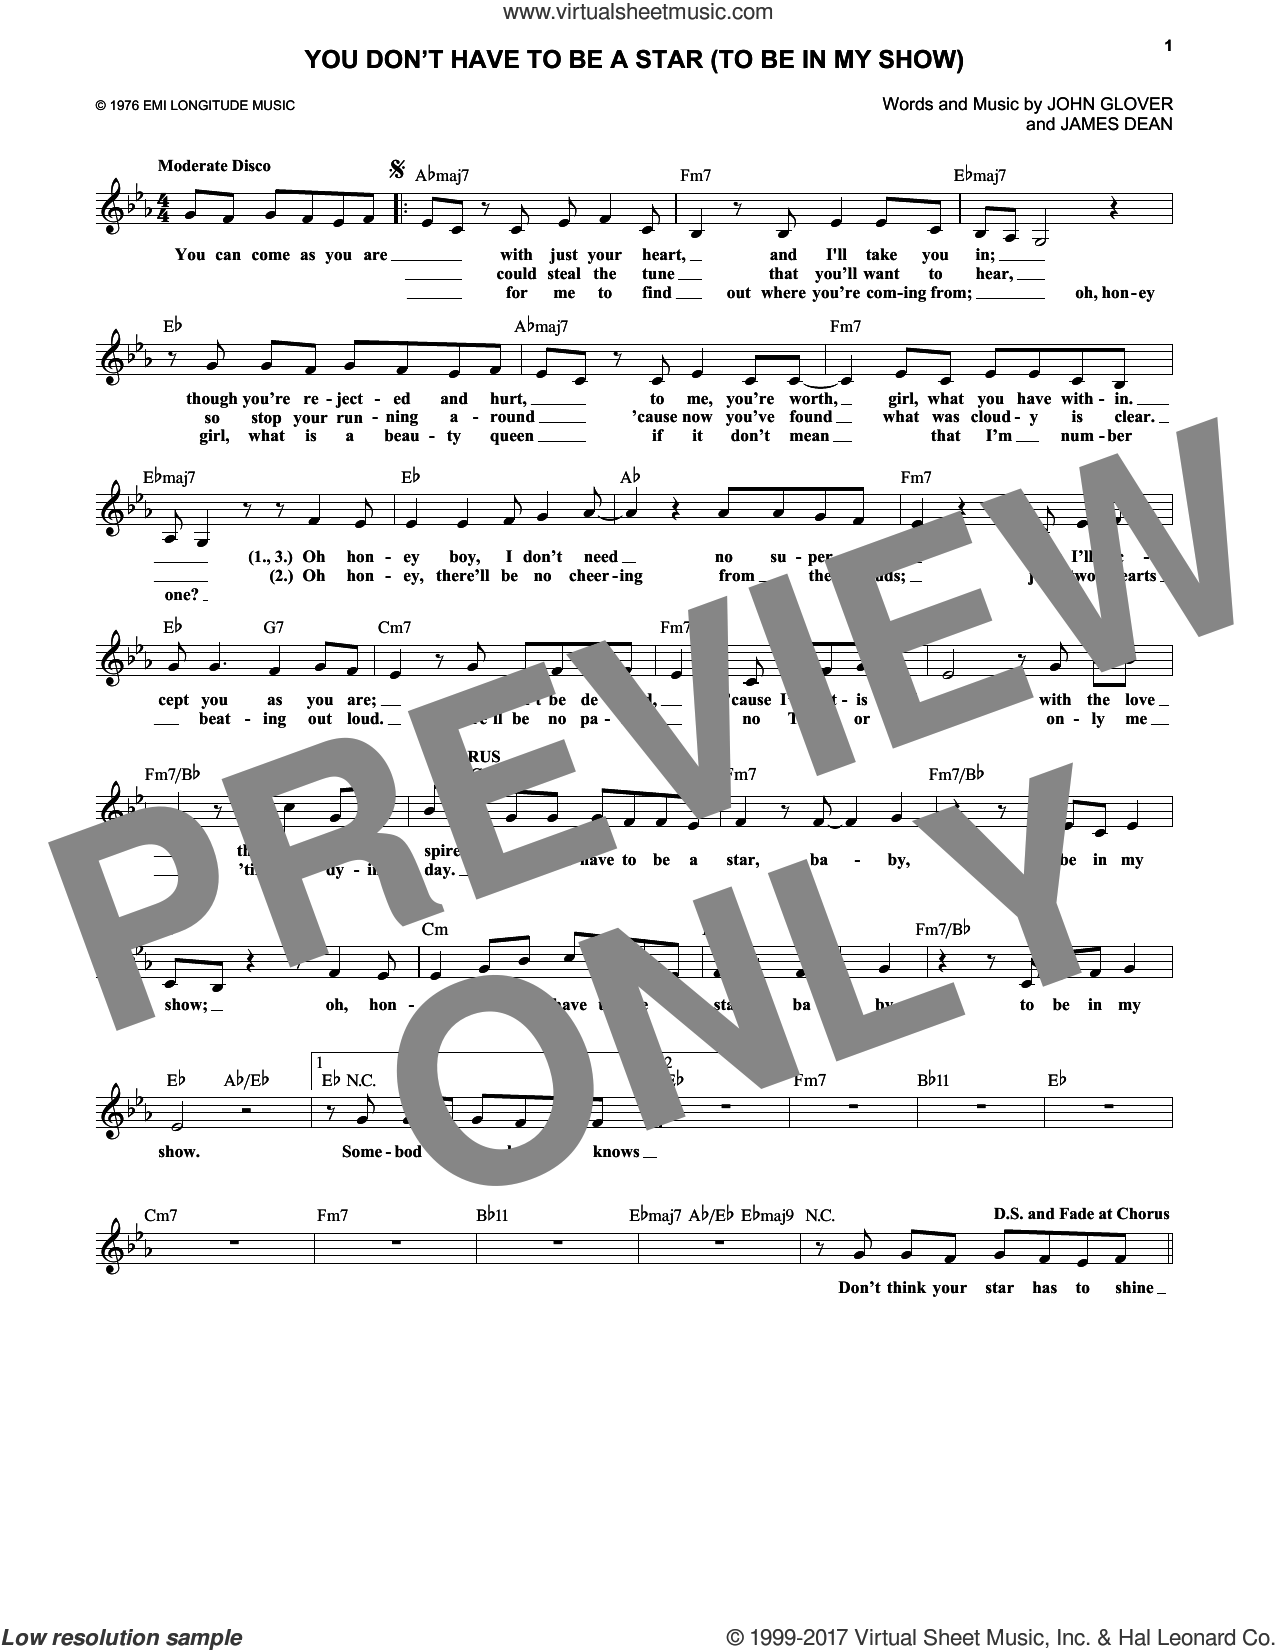 You Don't Have To Be A Star (To Be In My Show) sheet music for voice and other instruments (fake book) by James Dean, Marilyn McCoo & Billy Davis, Jr. and John Glover, intermediate skill level